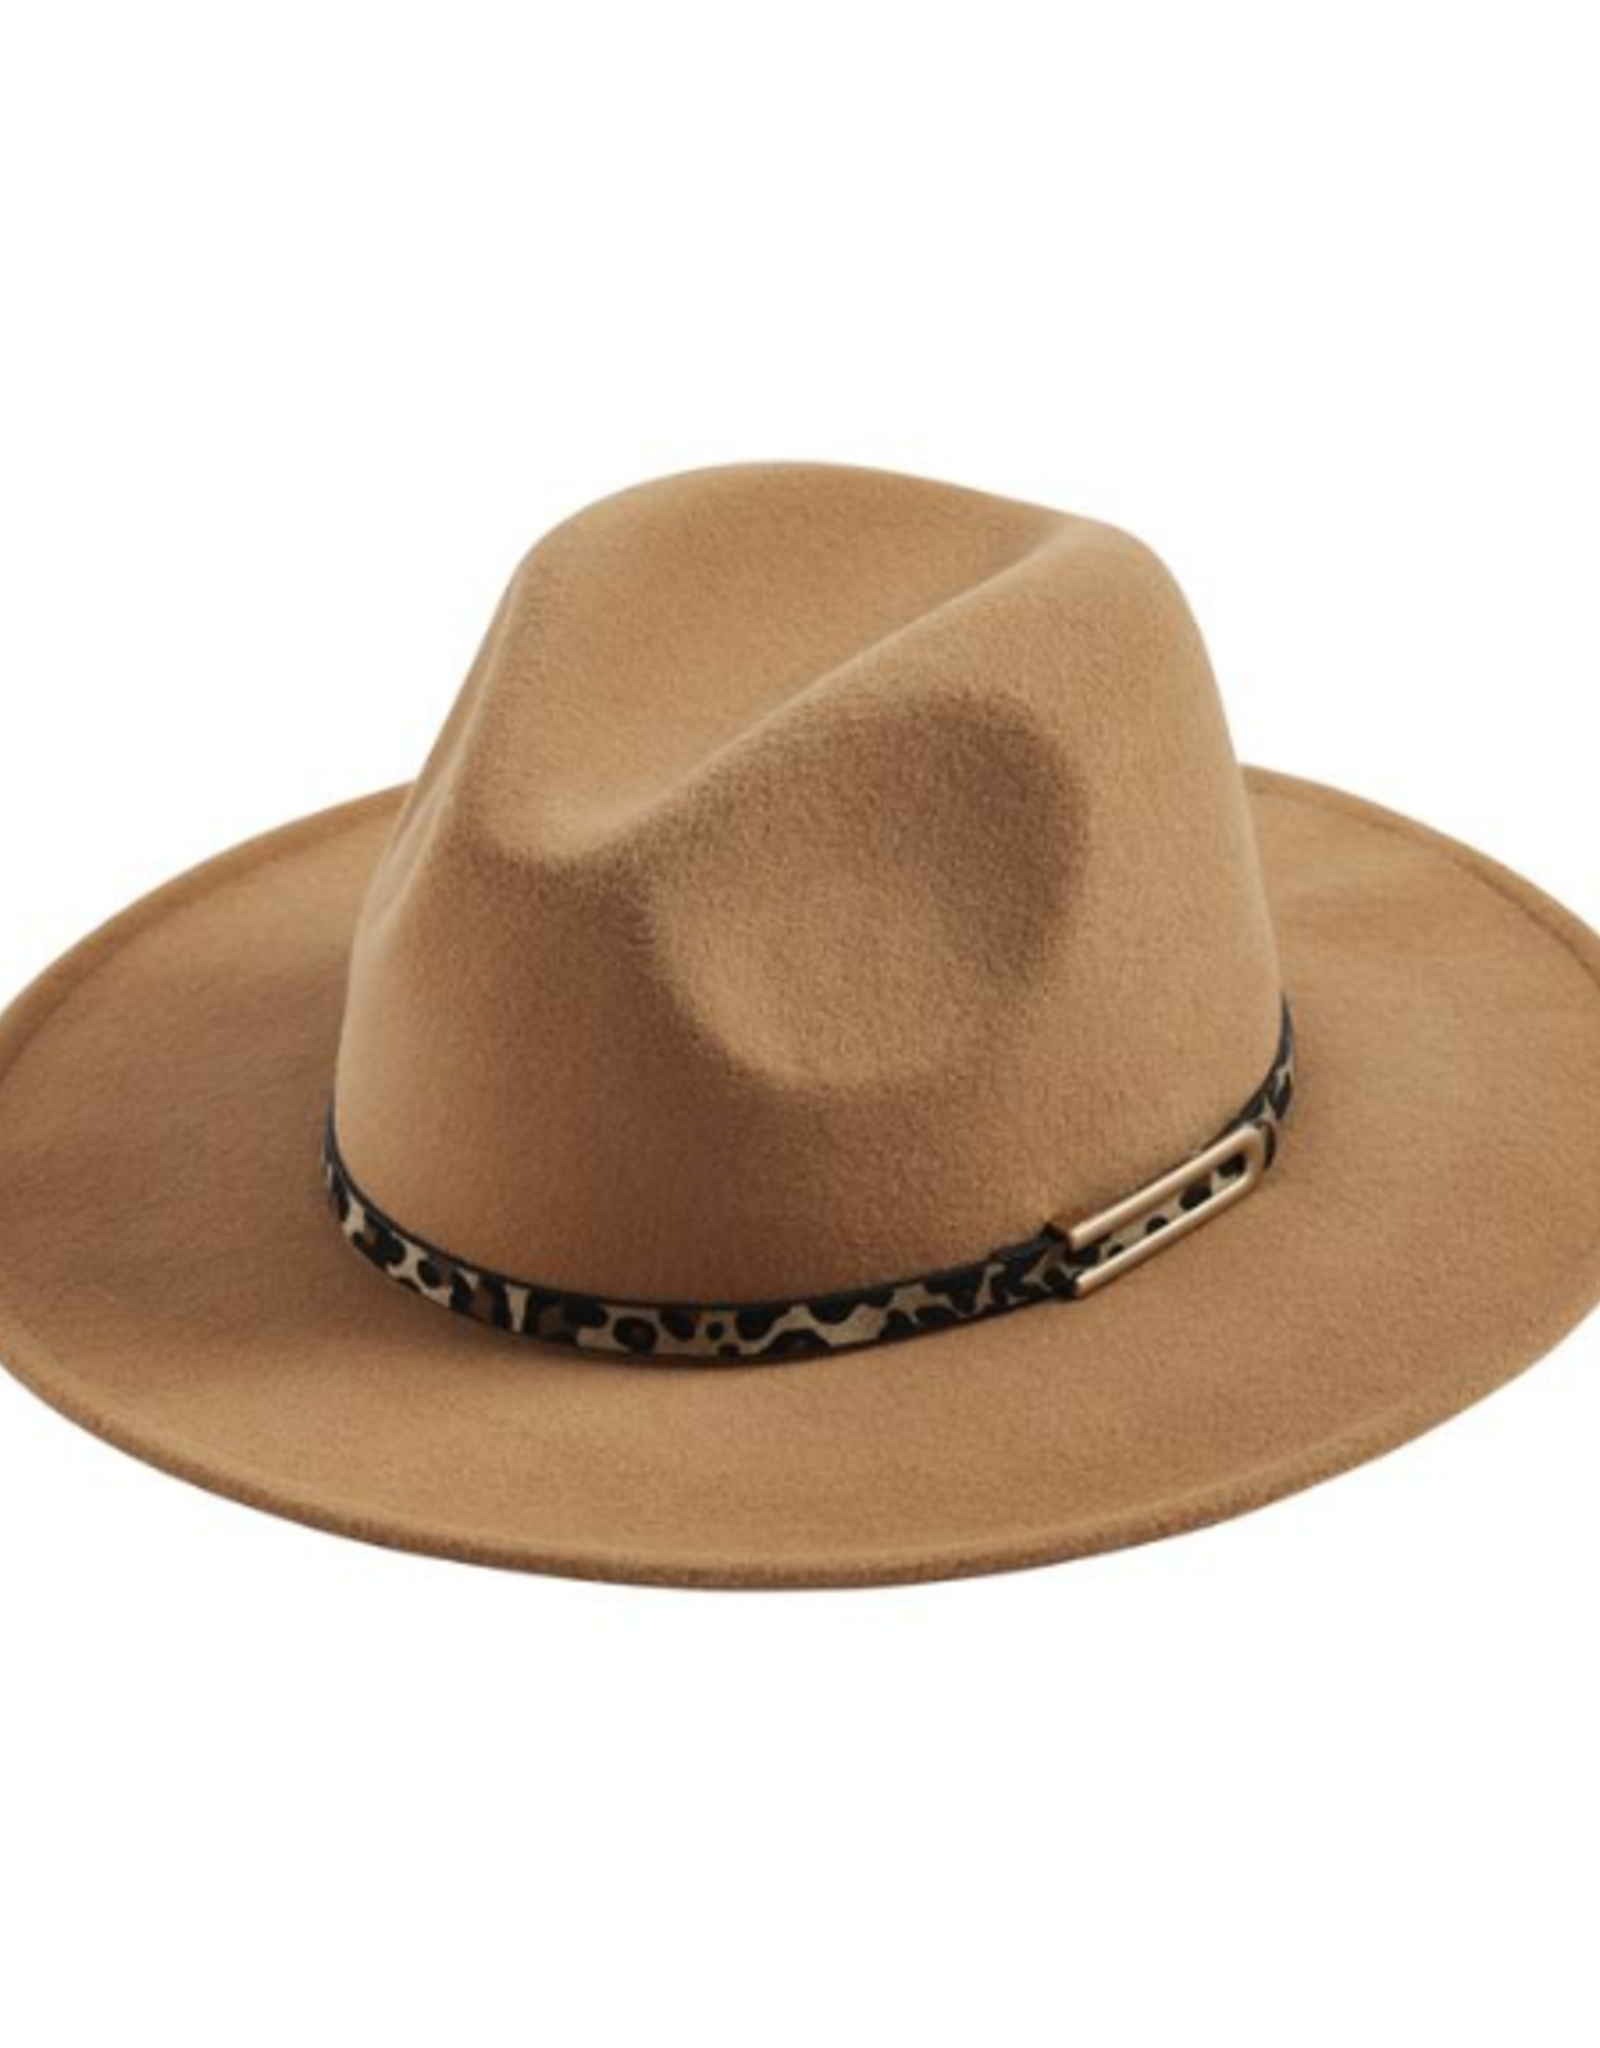 Wink The Kelly Flat Brim Hat with Leopard Hat Band